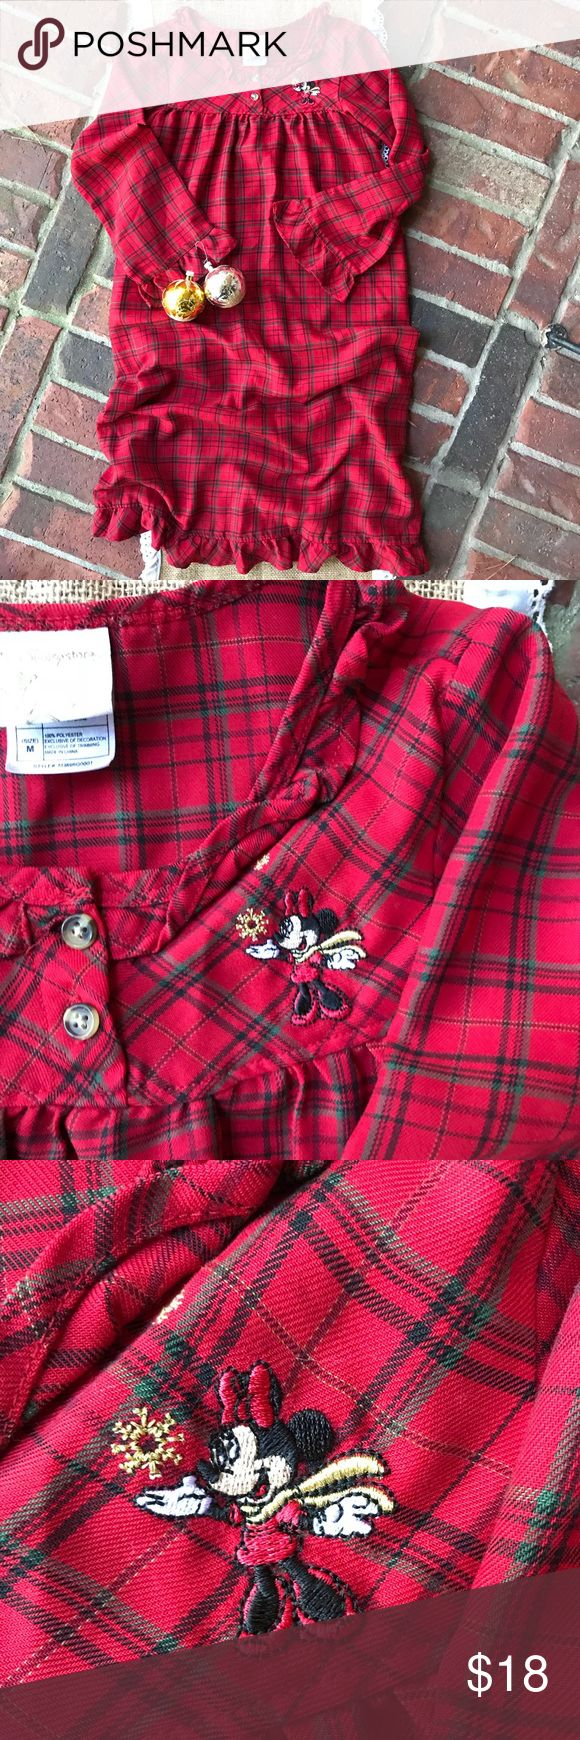 Disney plaid Minnie Christmas nightgown Sz Med red Disney Christmas red plaid Minnie Mouse nightgown. Size med. Embroidered Minnie, ruffled sleeves. EUC Pet and smoke free home. **If you need measurements PLZ let me know. Disney Pajamas Nightgowns